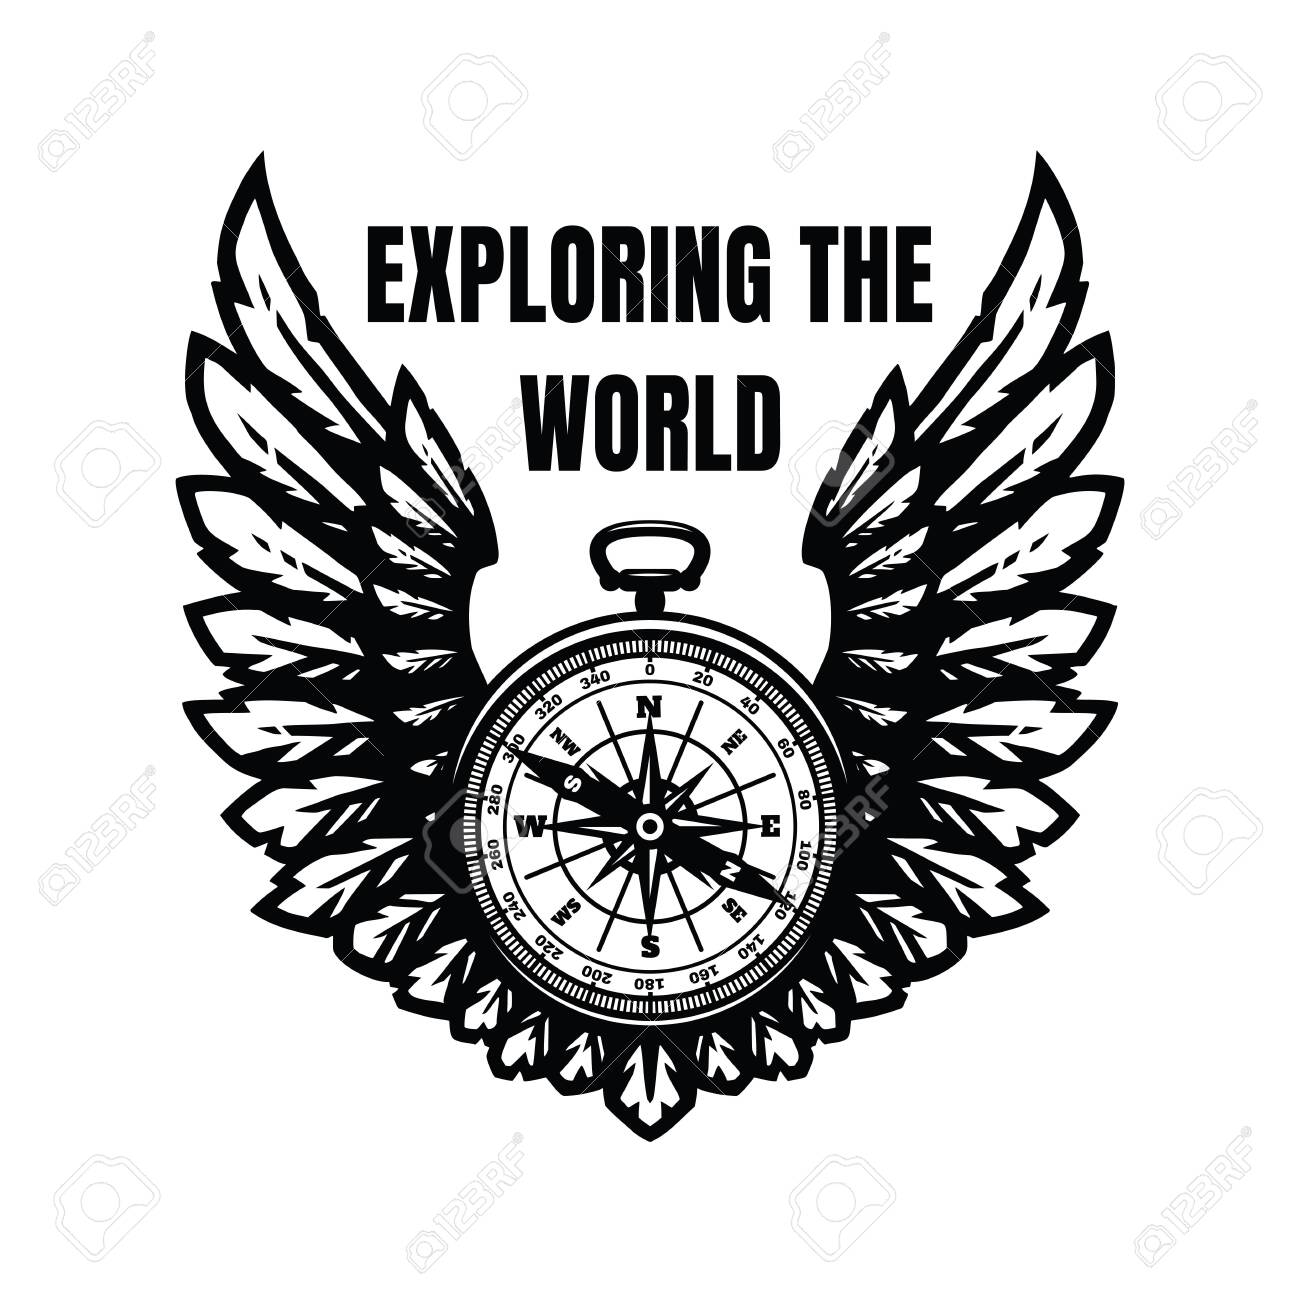 Exploring the world. Compass and wings, sign, symbol. Vector illustration. - 136328504